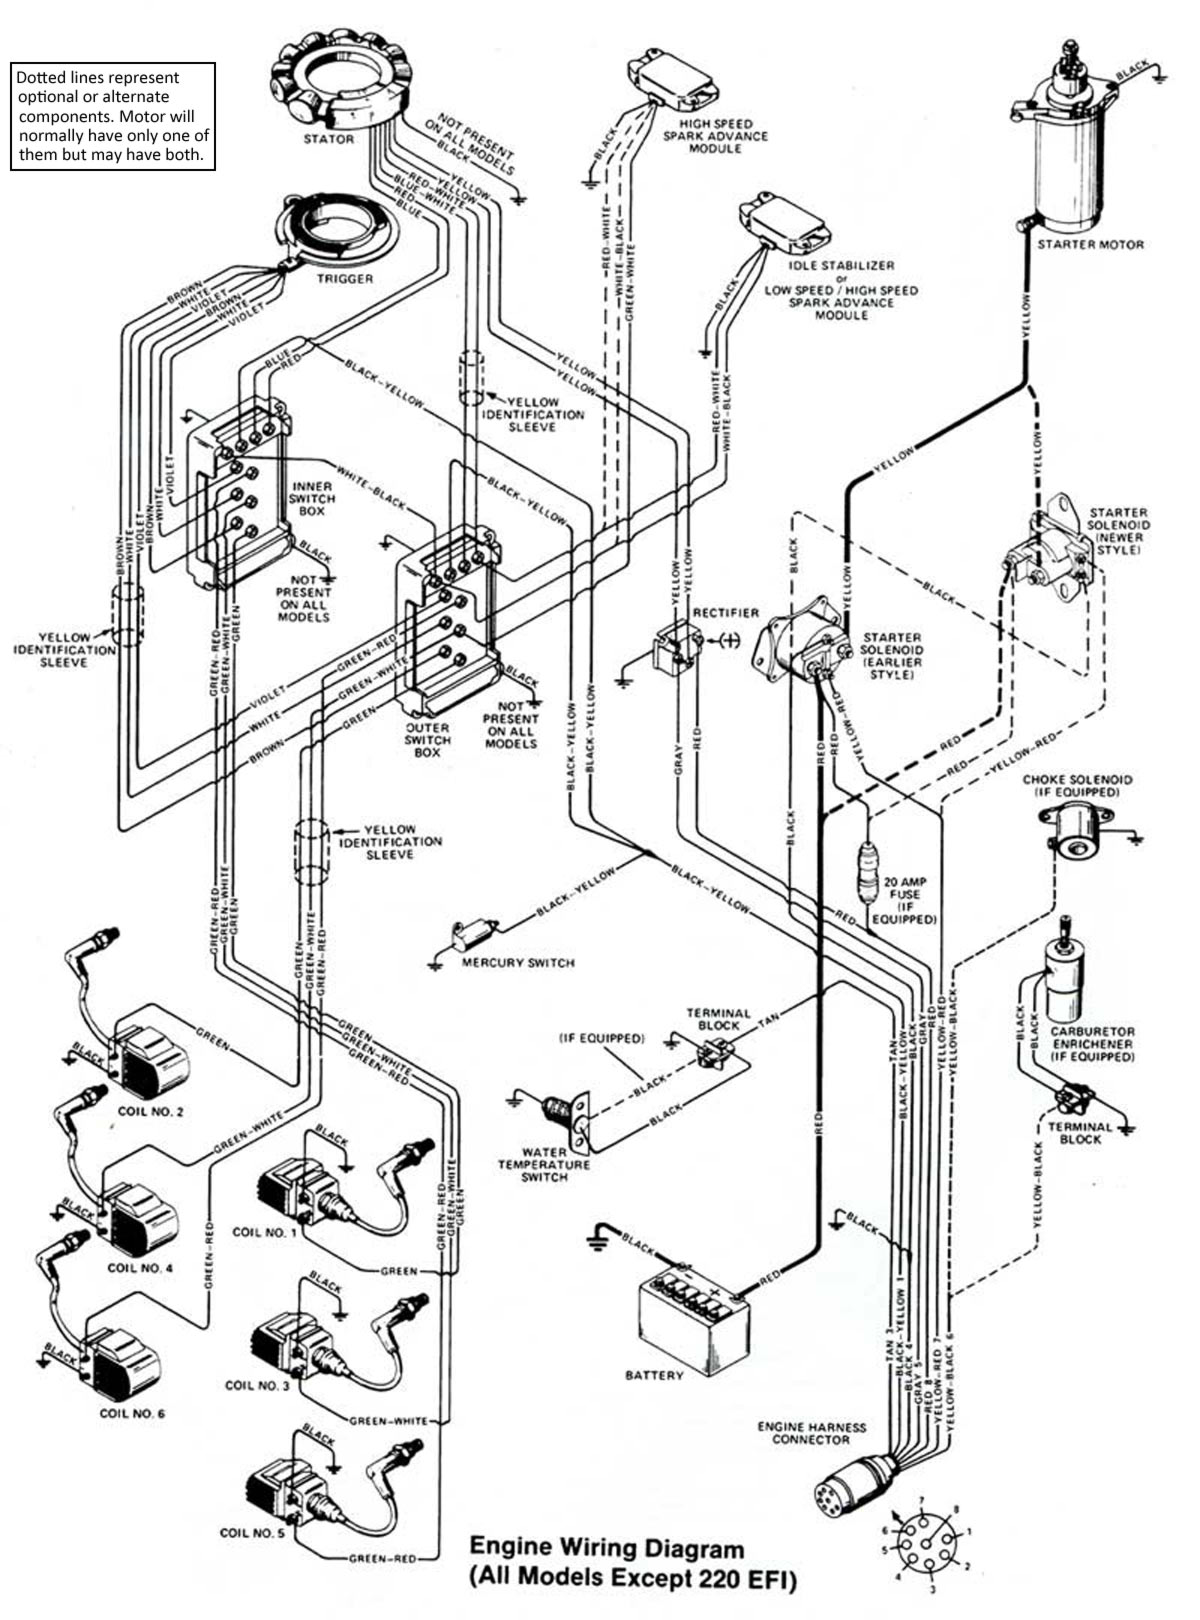 Mercury outboard wiring diagrams mastertech marin 2000 mercury 150 wiring diagram 6 2000 mercury 150 wiring diagram